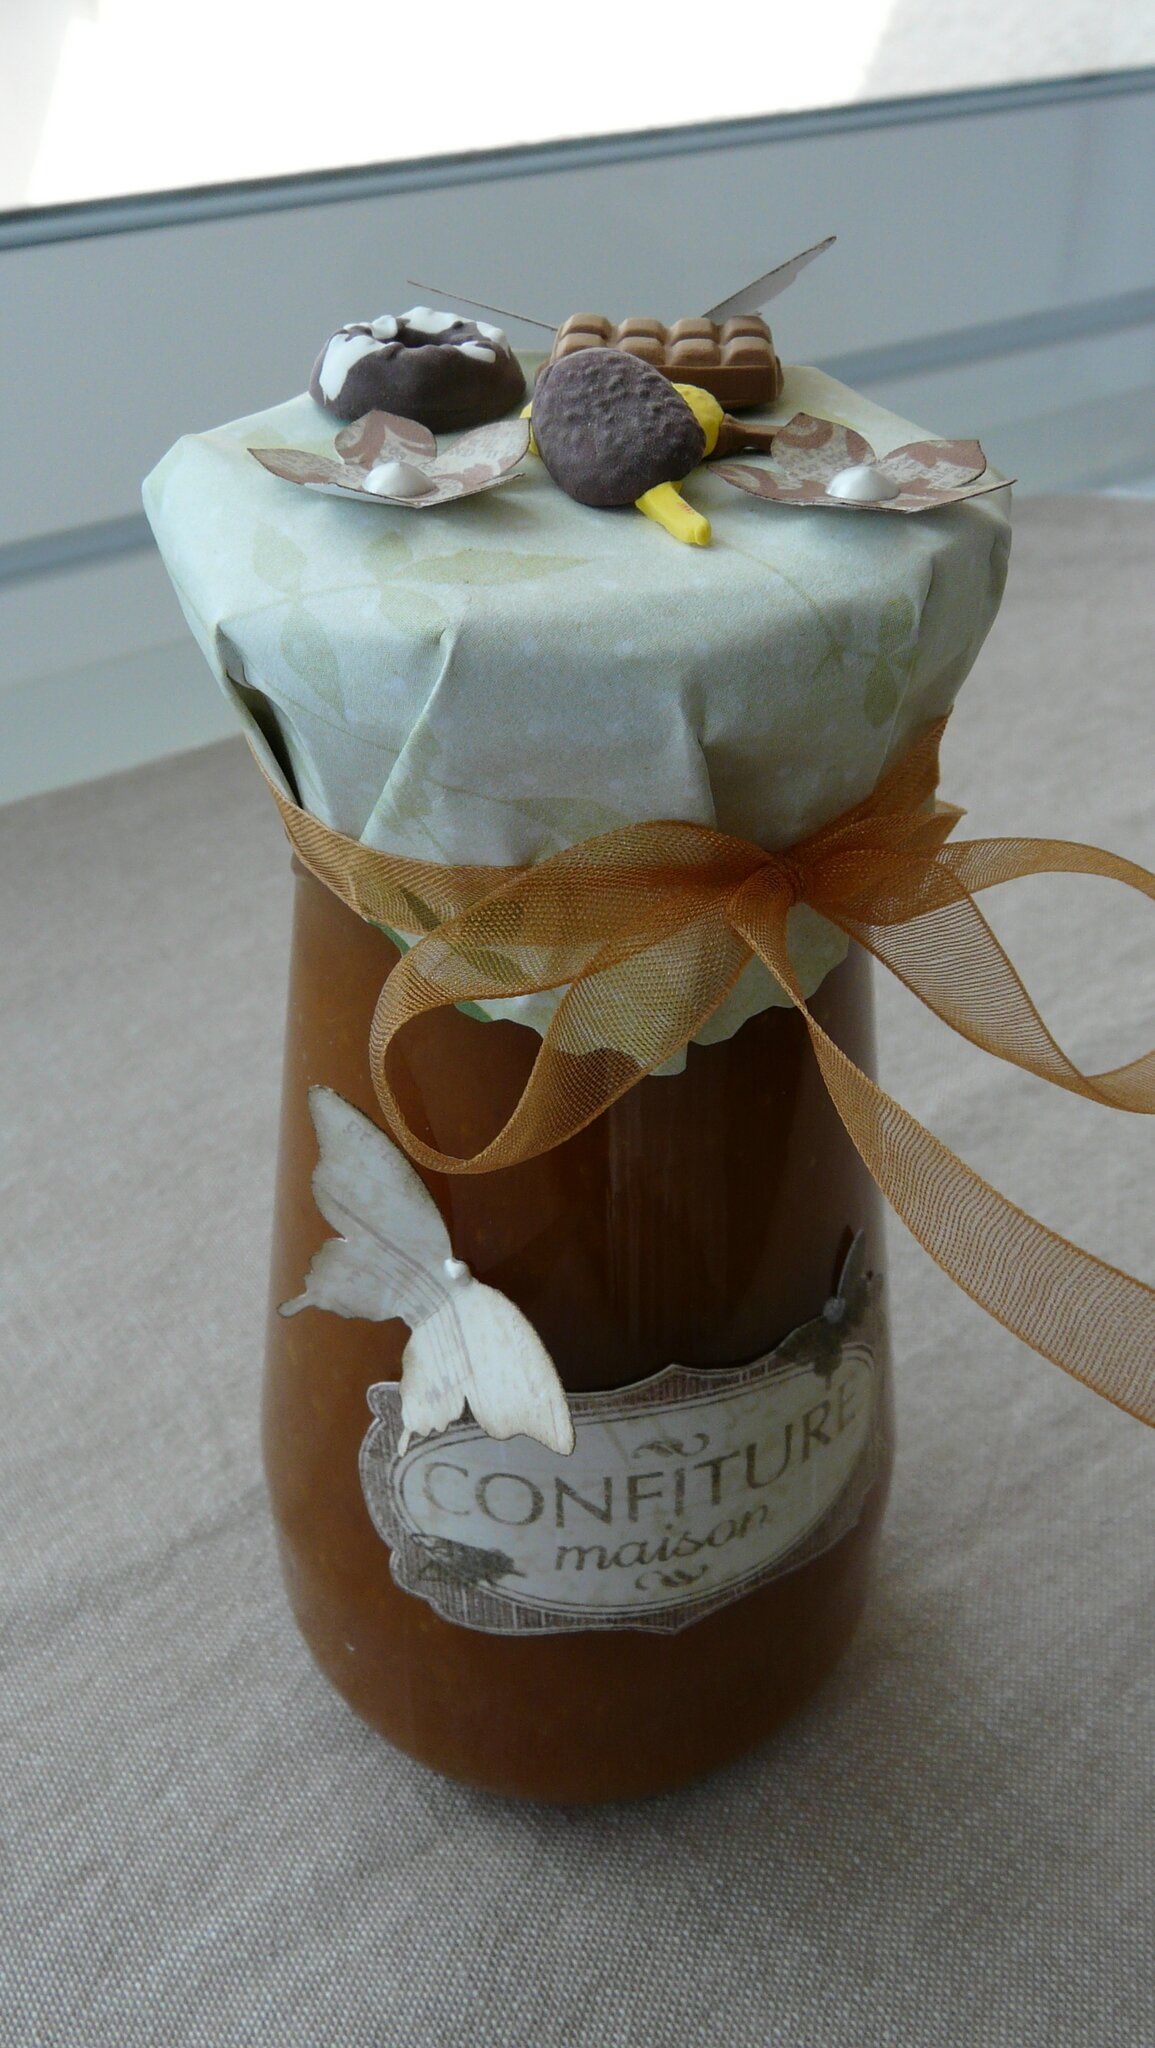 Petit pot de confiture le scrap de cissou - Petit pot confiture ...